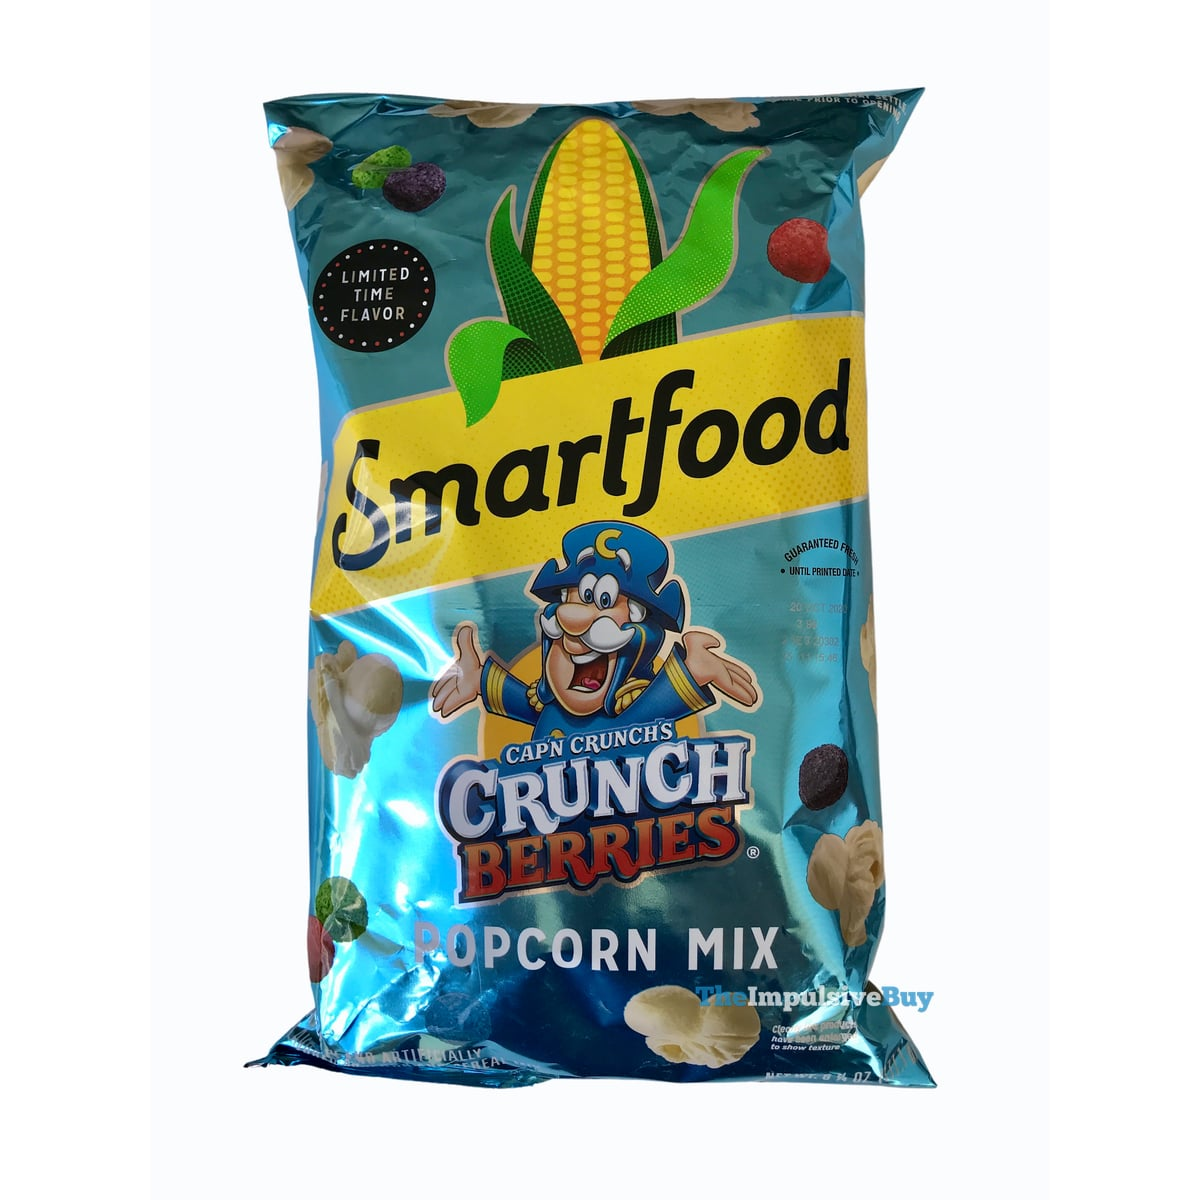 Review Smartfood Cap N Crunch S Crunch Berries Popcorn Mix The Impulsive Buy All berries is filled with delicious artificially fruit flavored berry shaped cereal. crunch berries popcorn mix